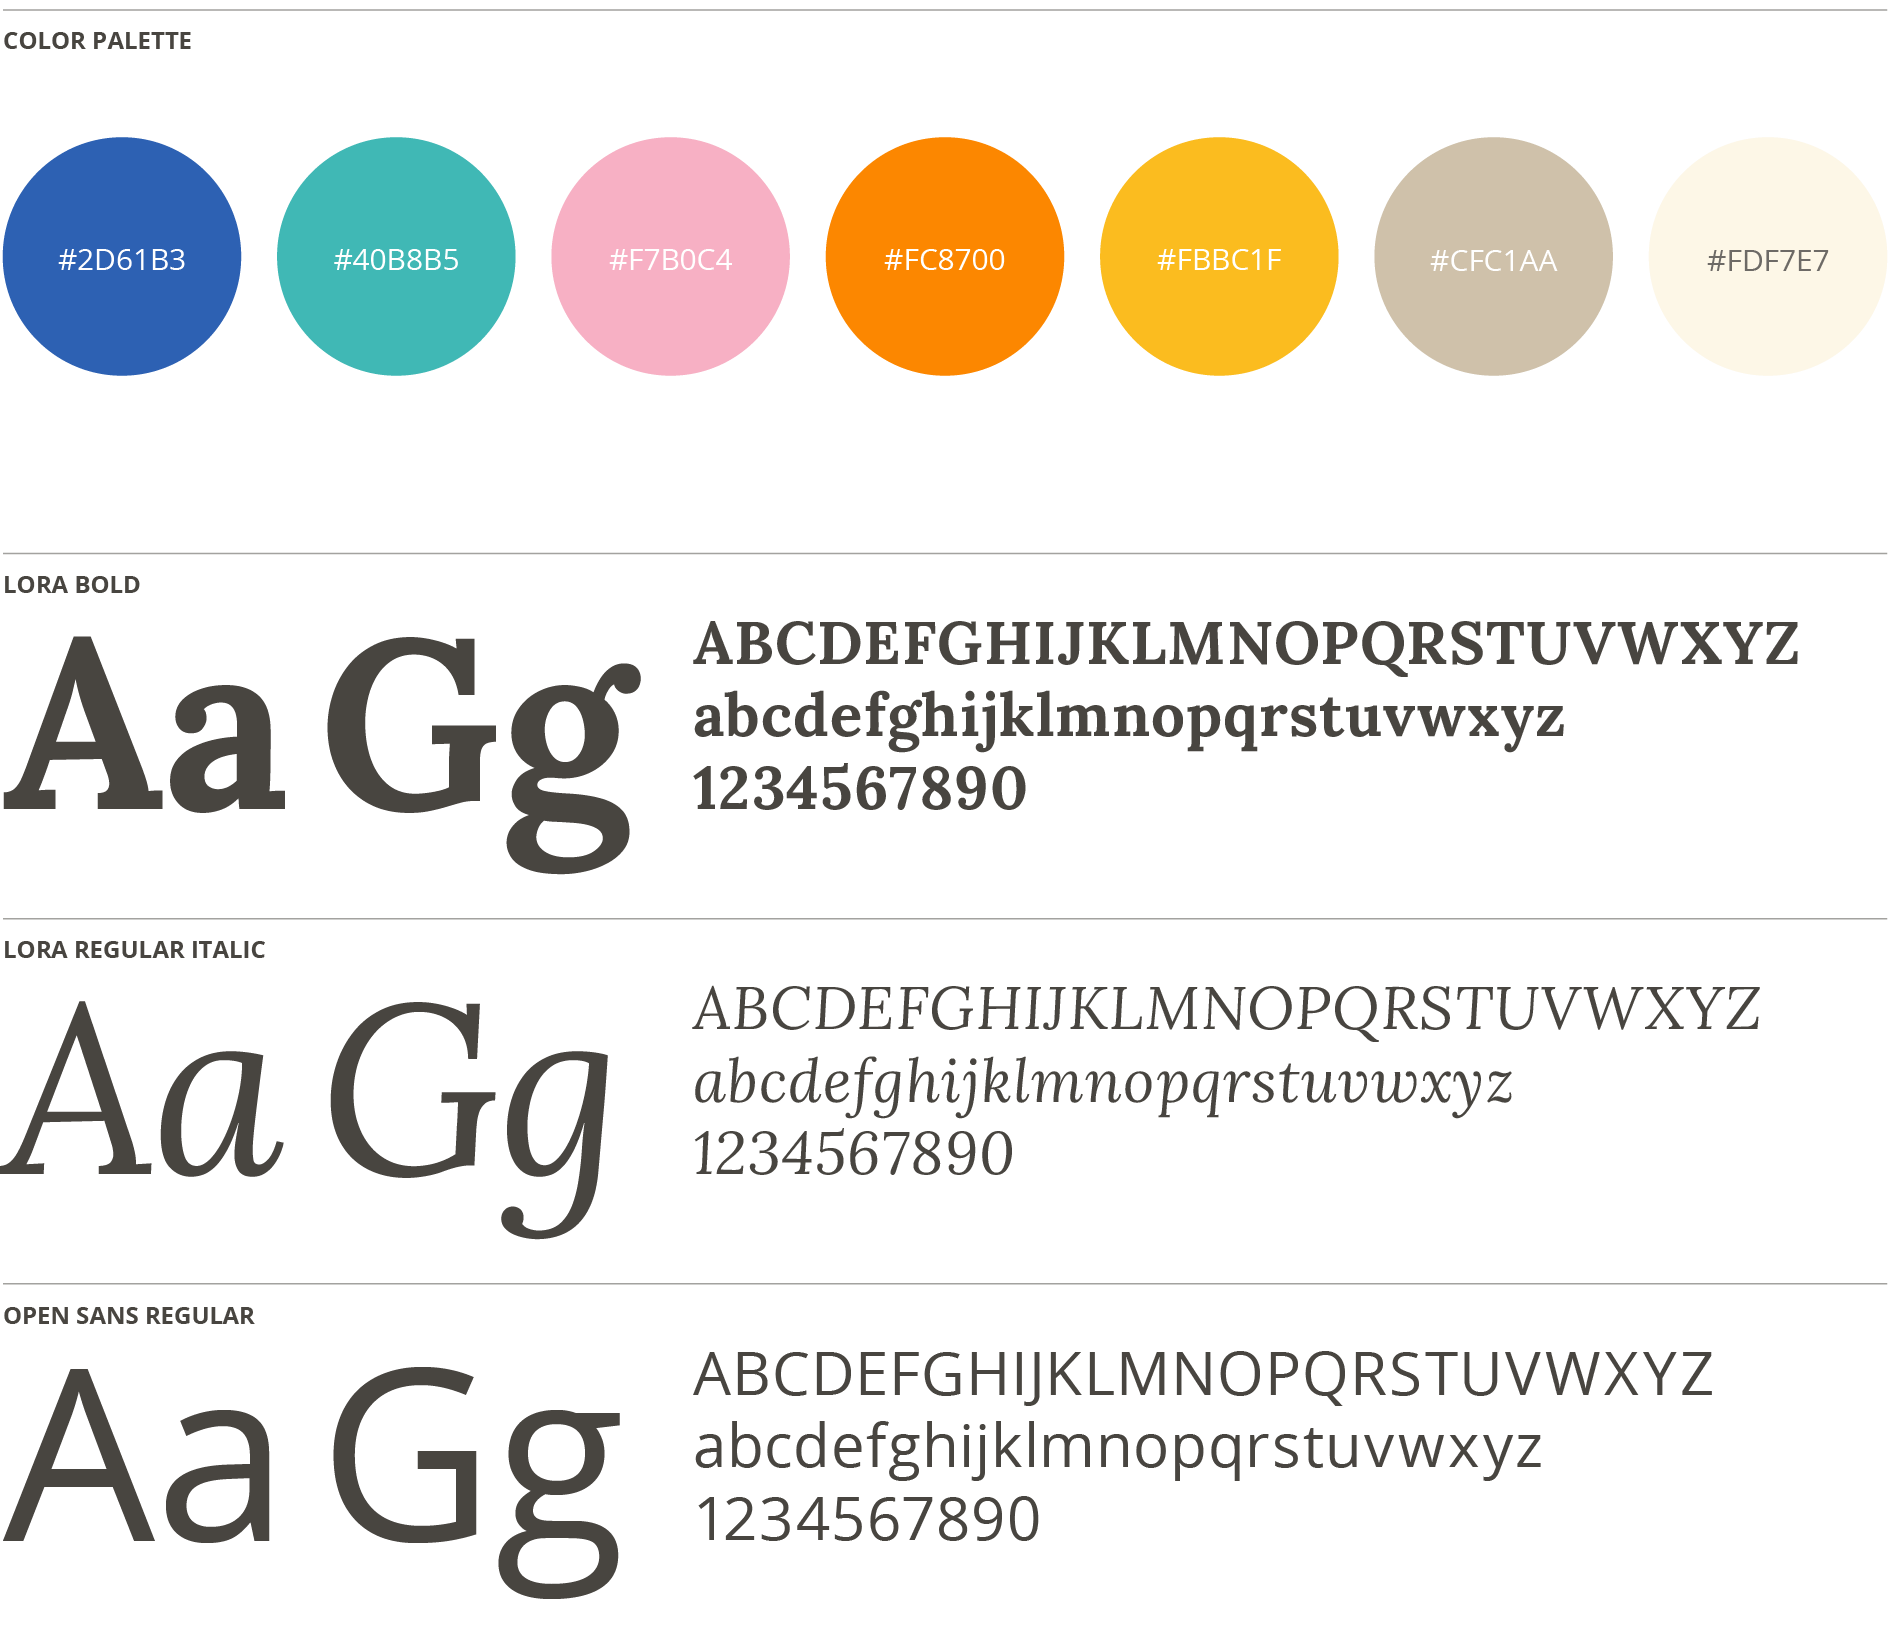 Curtis School Color Palette and Typography